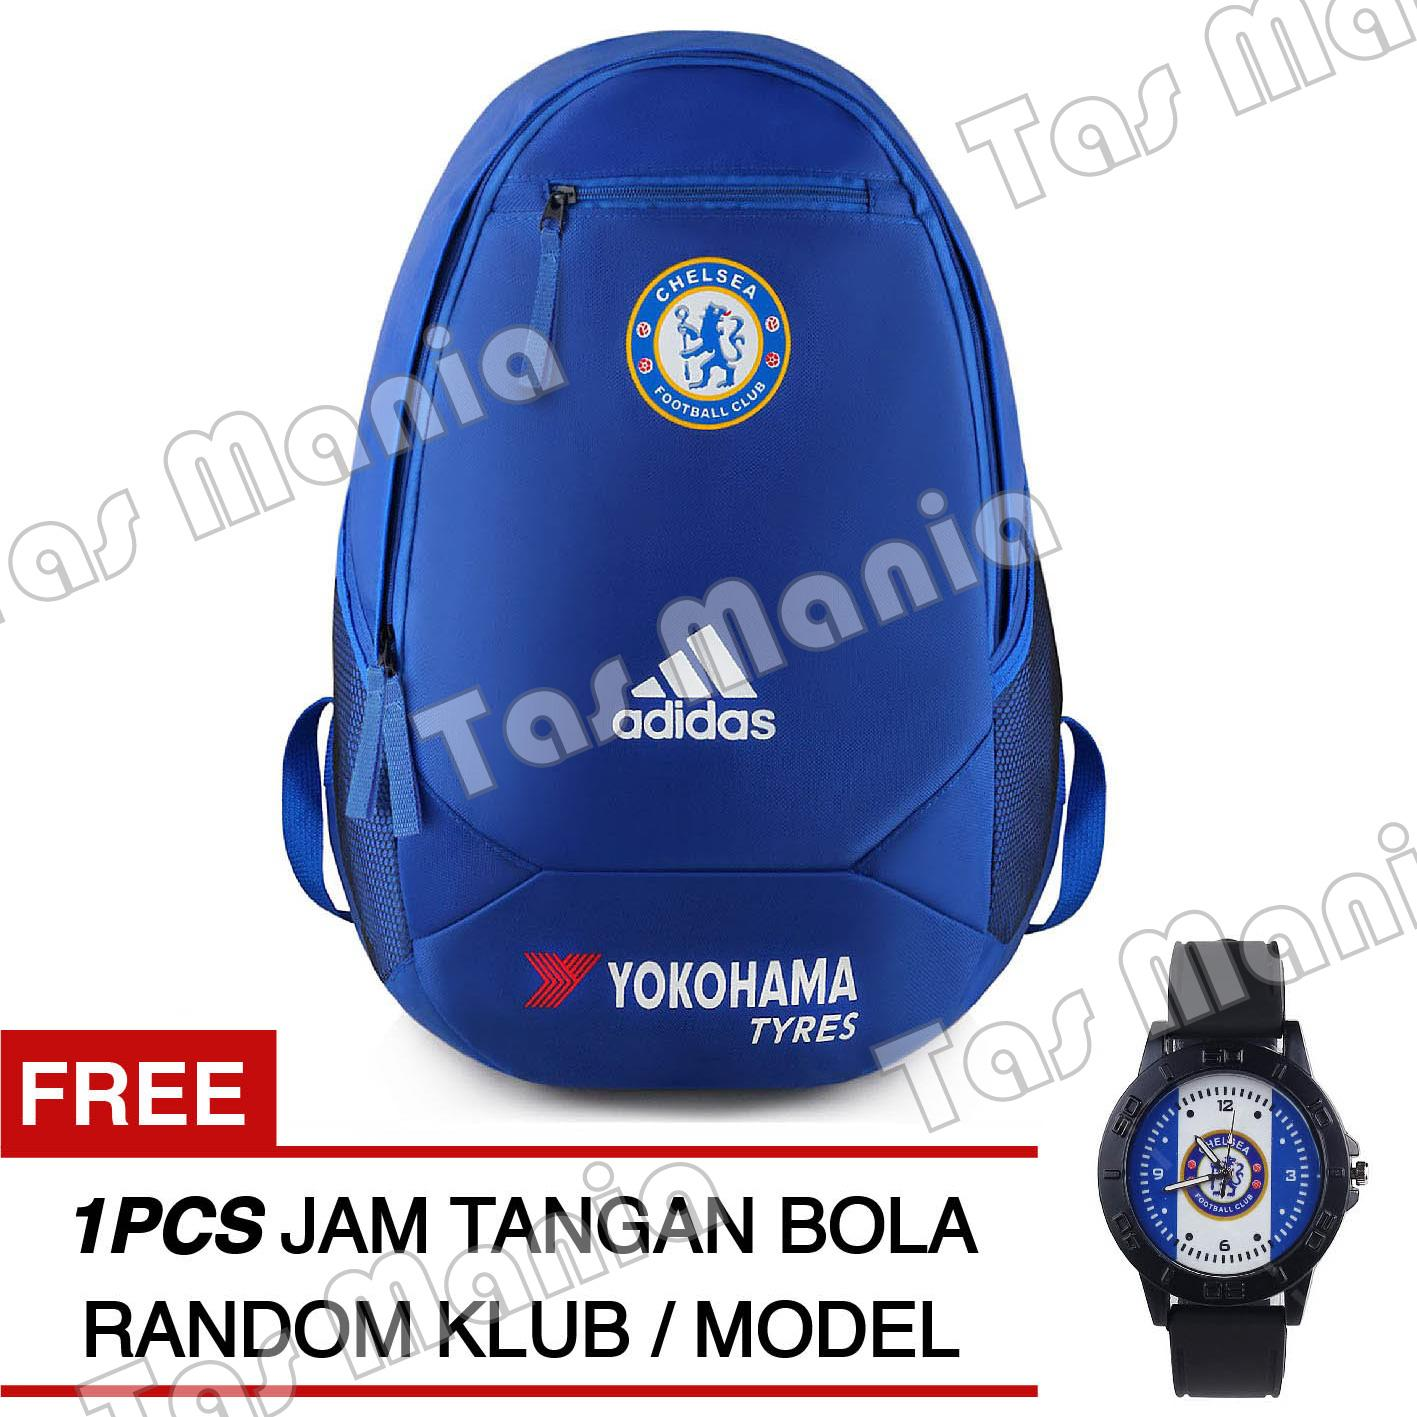 Tas Ransel Adidas Bola Pria Chelsea FC Laptop Backpack Men Soccer Editions - Blue + Raincover + FREE Jam Tangan Pria Random Color / Model